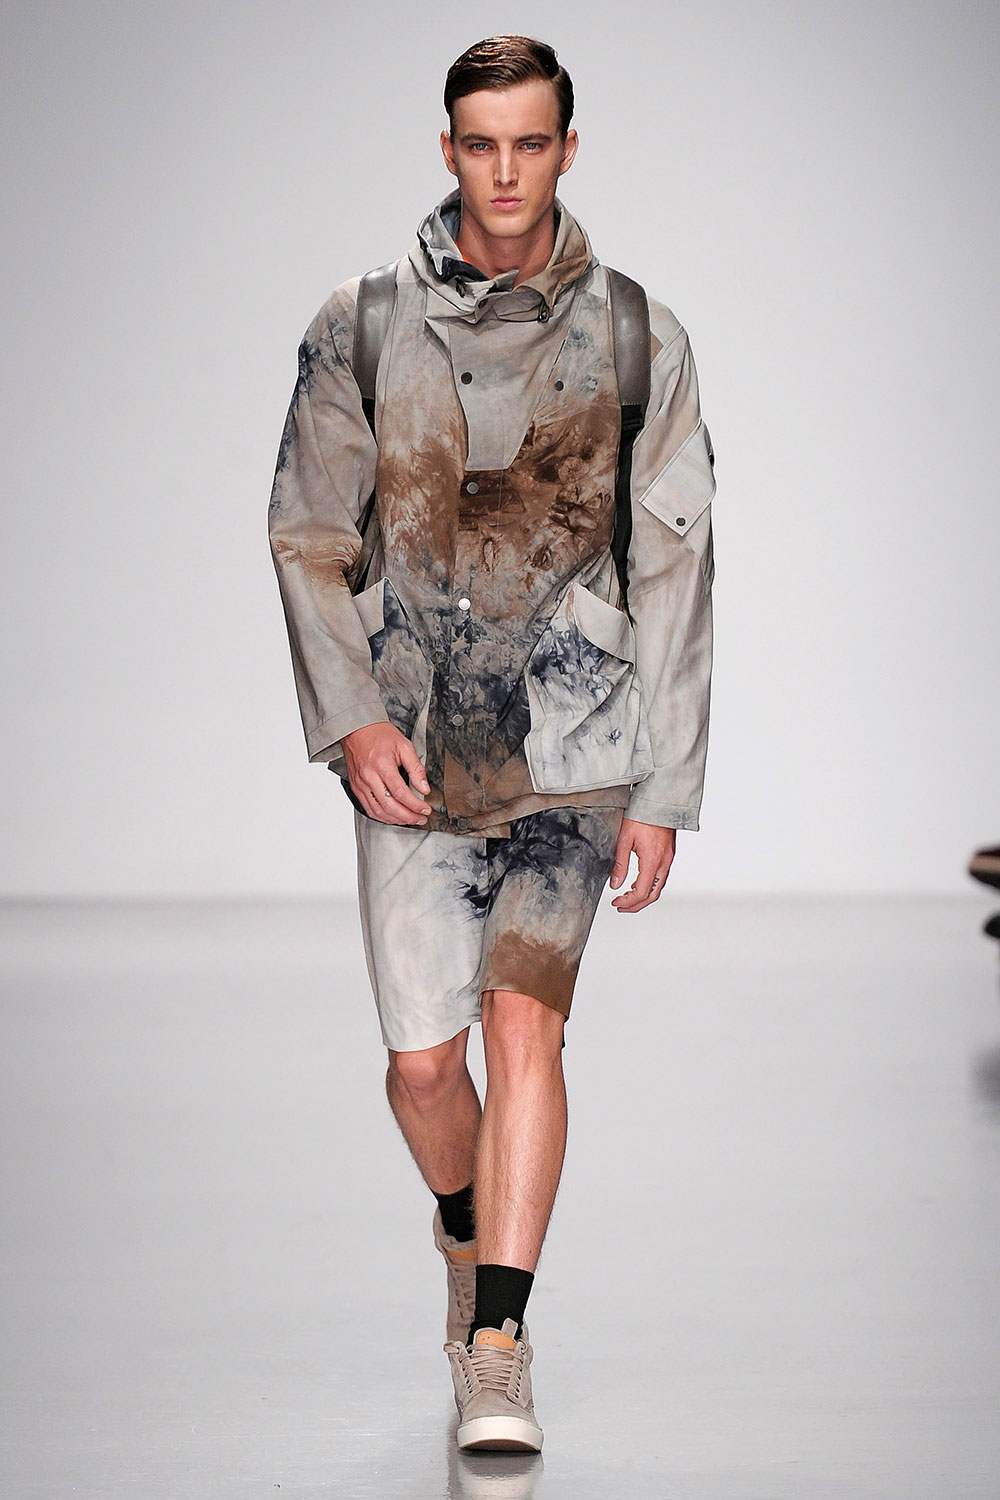 HERO-MAGAZINE-SS14-CHRISTOPHER-RAEBURN-CATWALK--Christopher-Raeburn-SS14-Menswear-Look-1